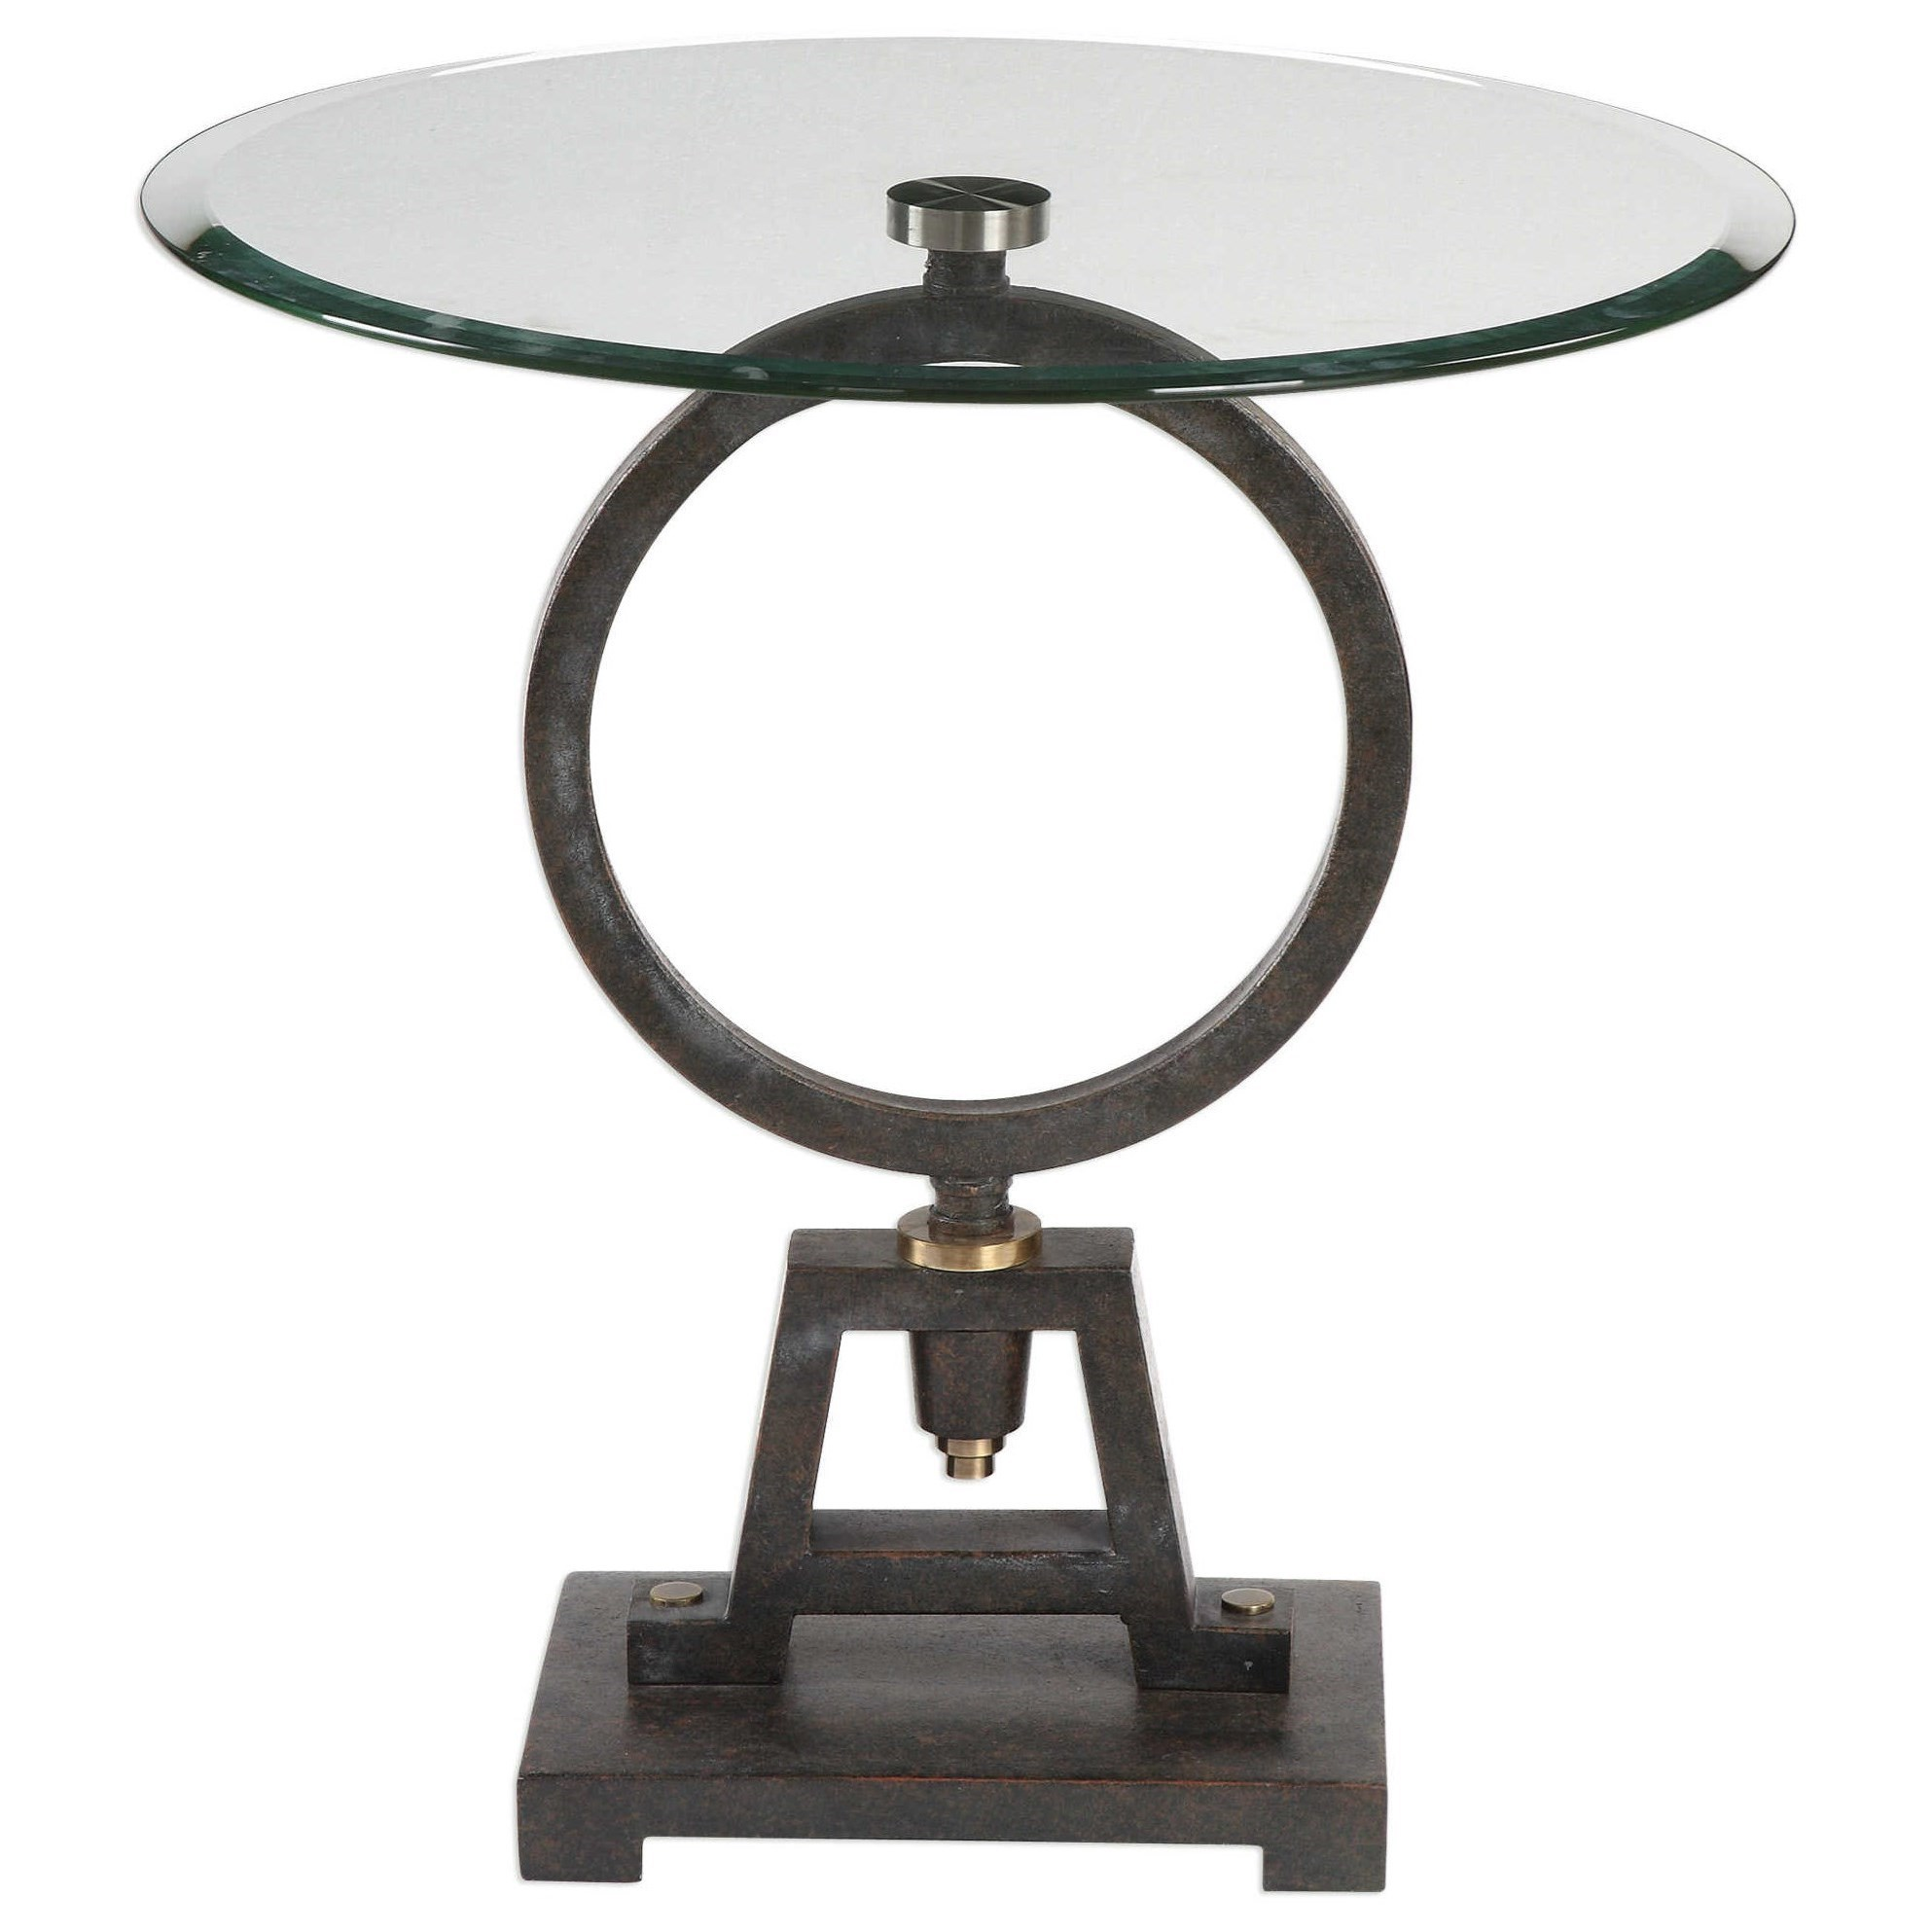 uttermost accent furniture 24725 adan glass accent table   becker furniture world   end tables uttermost accent furniture 24725 adan glass accent table   becker      rh   beckerfurnitureworld